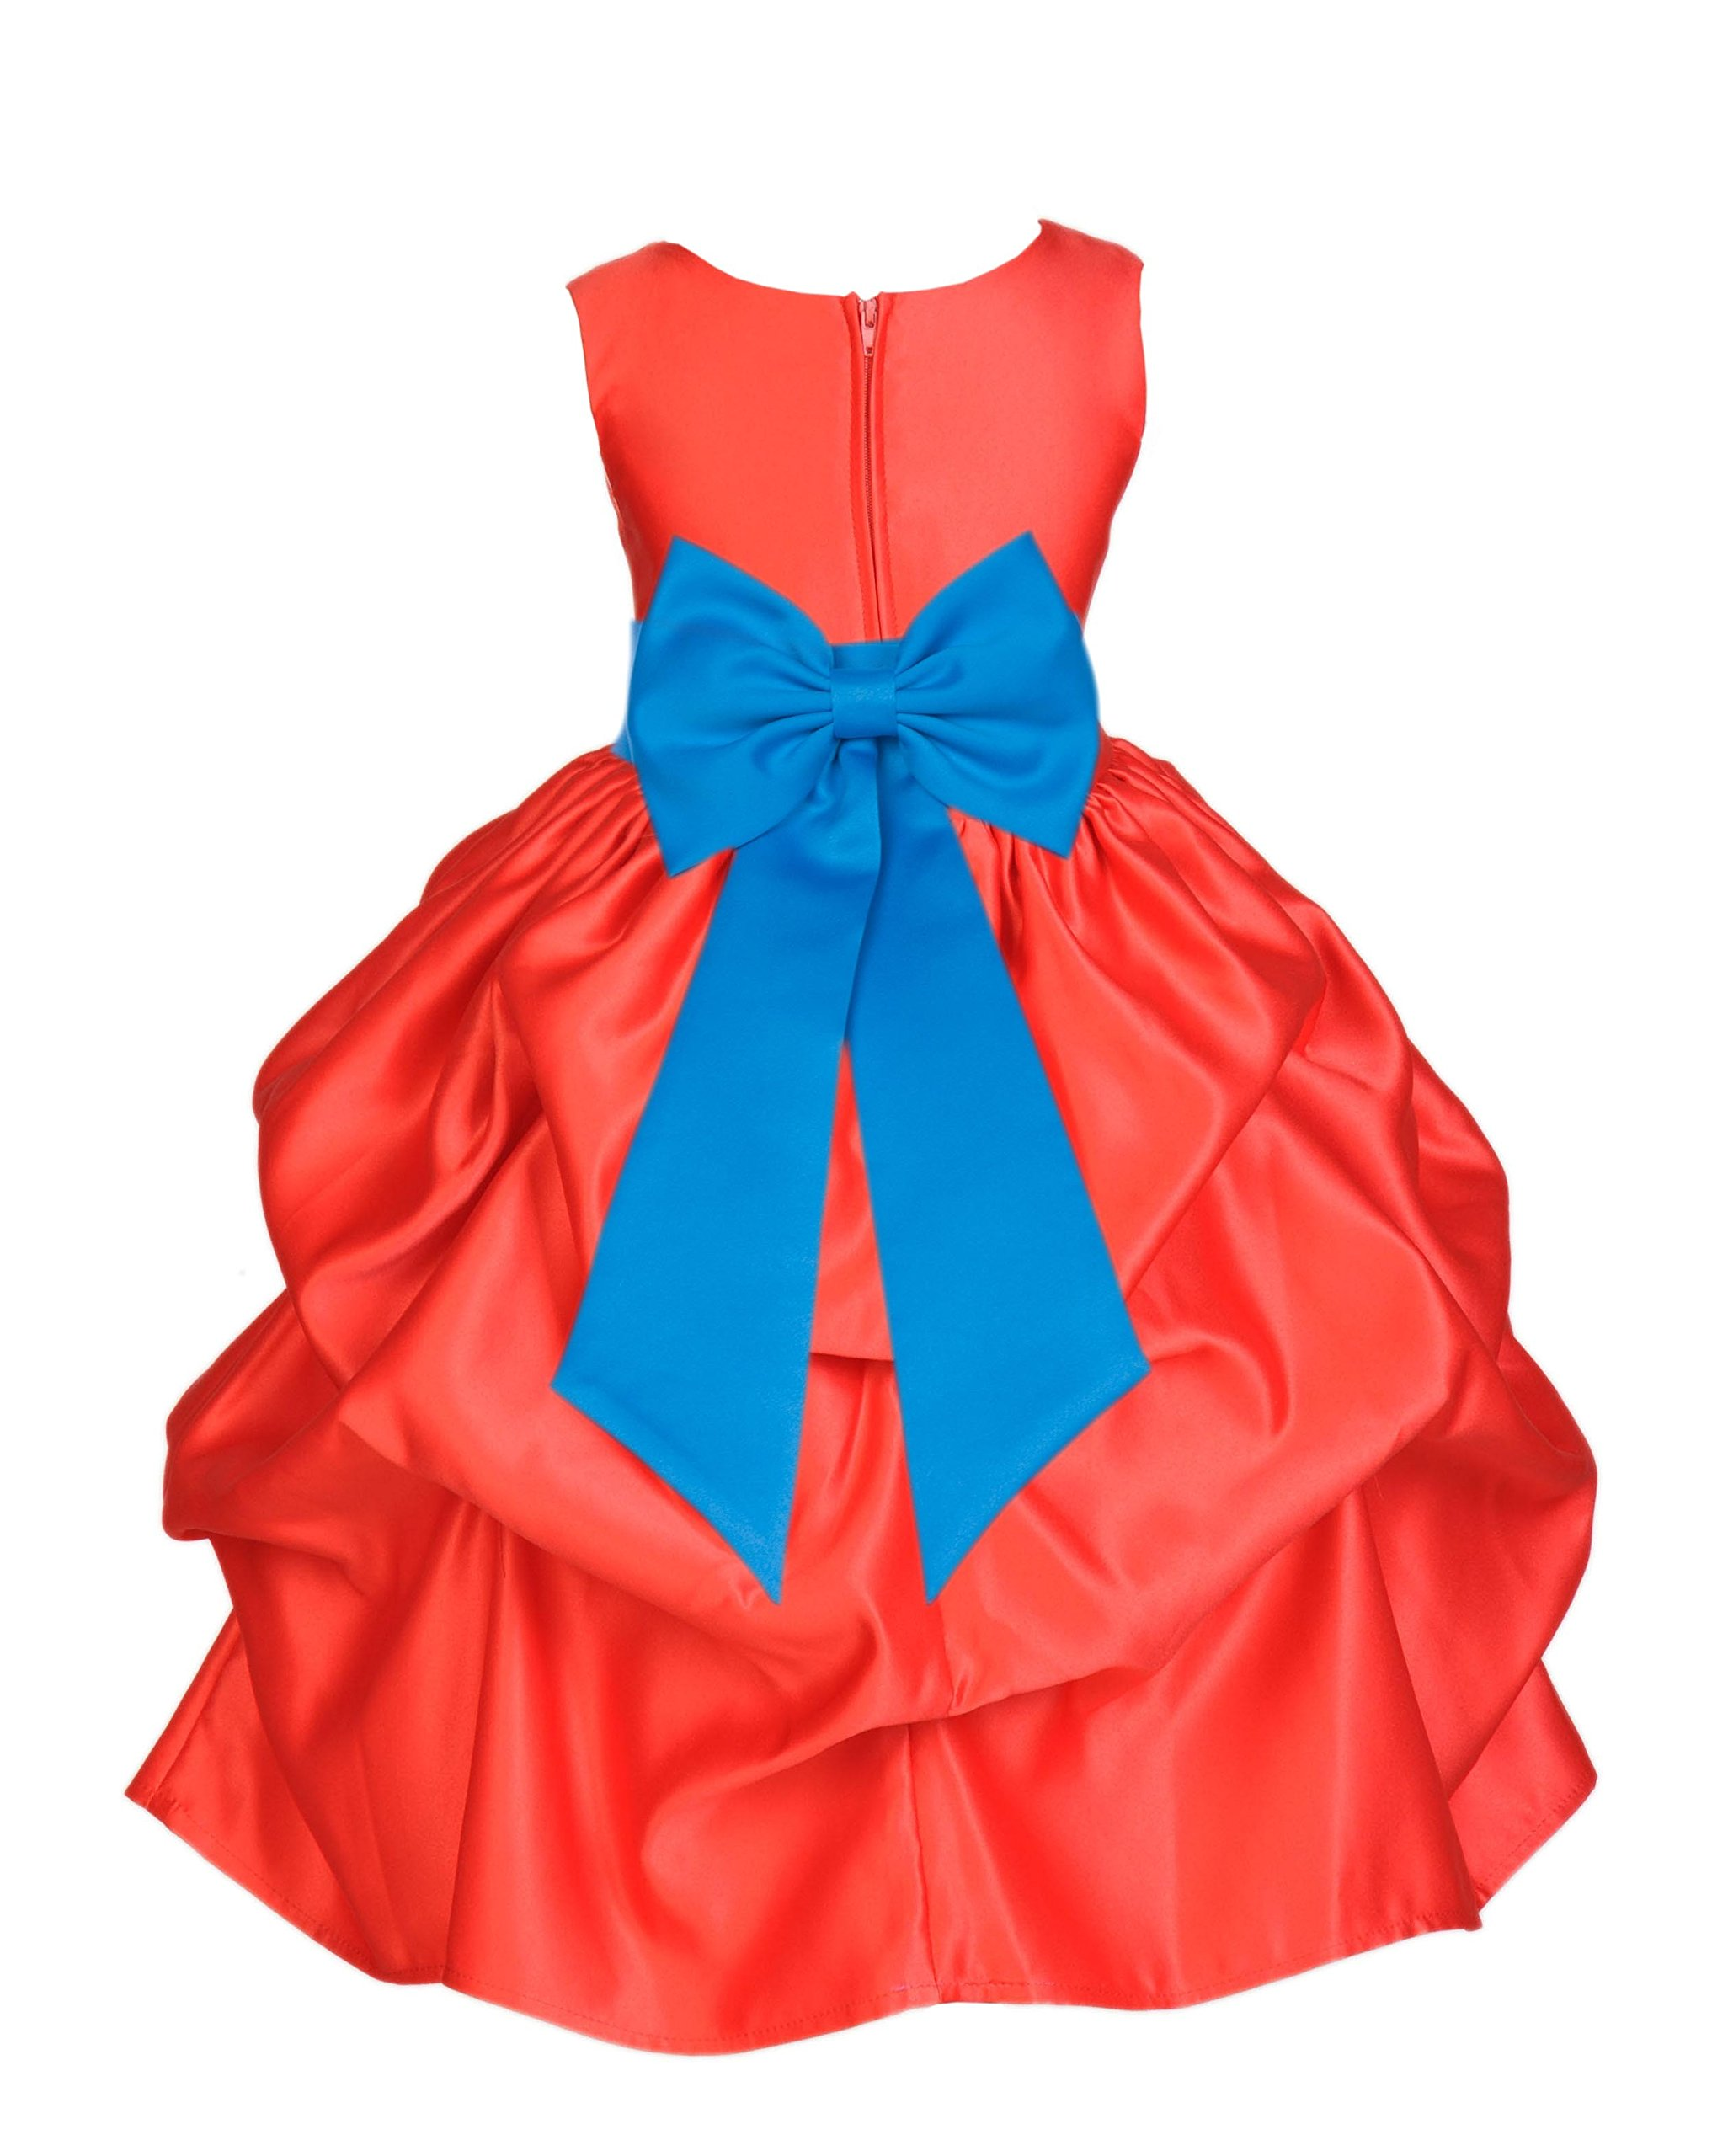 ekidsbridal Red Pick-Up Satin Bubble Flower Girl Dress Ballroom Dance Dresses 208T 10